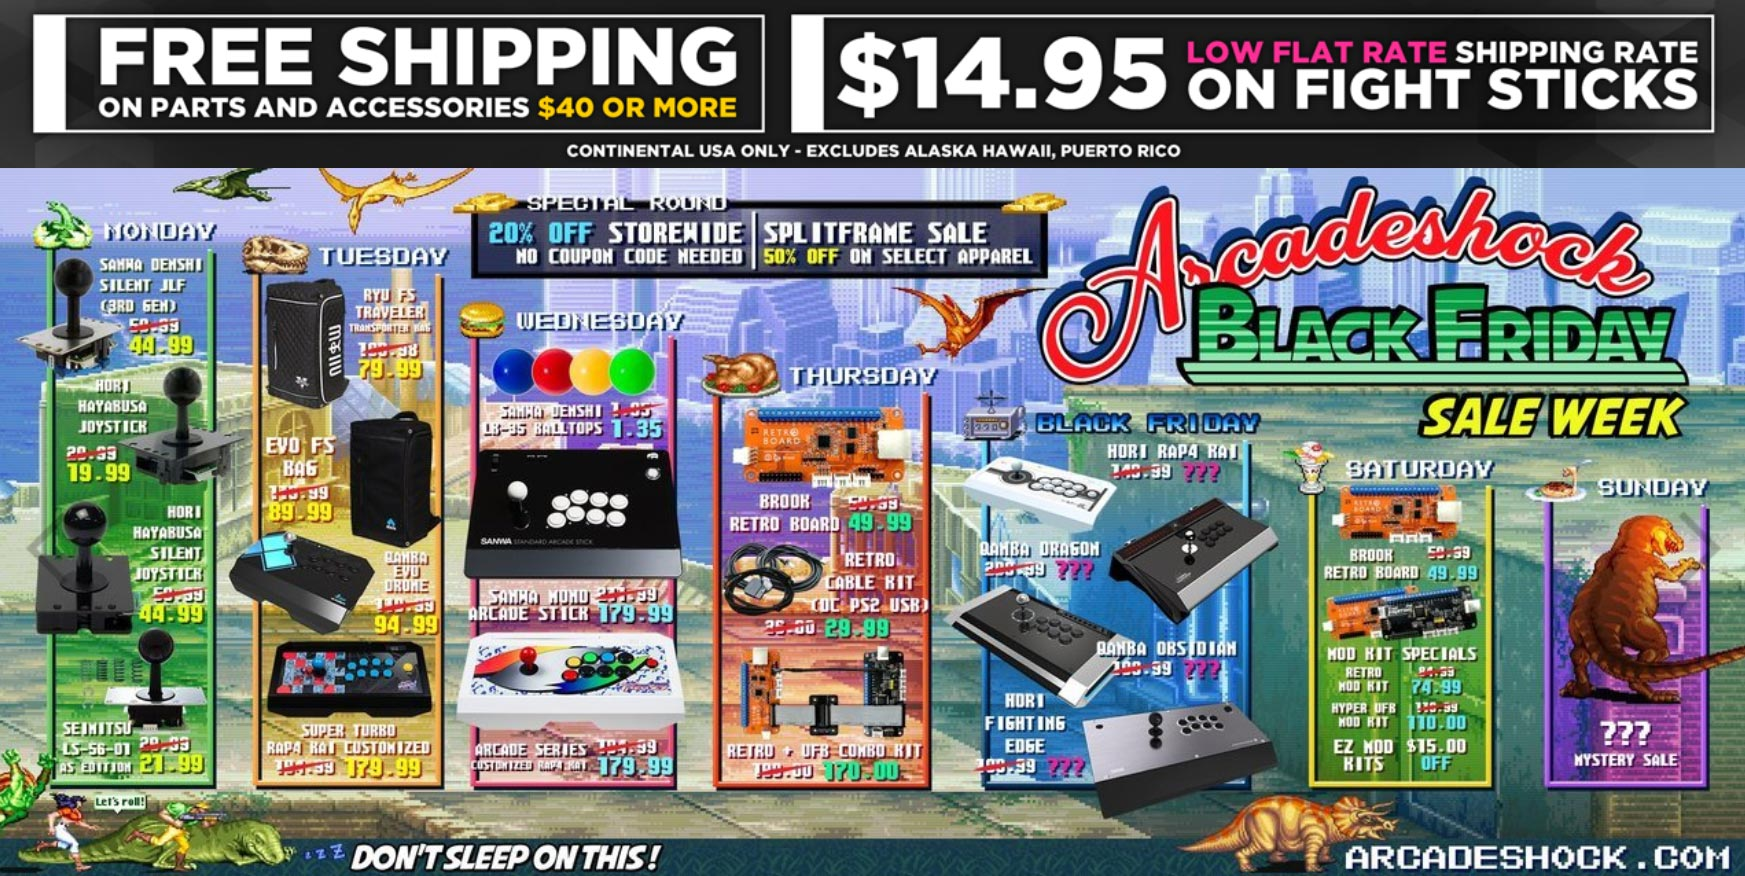 Arcade Shock Black Friday deals 1 out of 1 image gallery